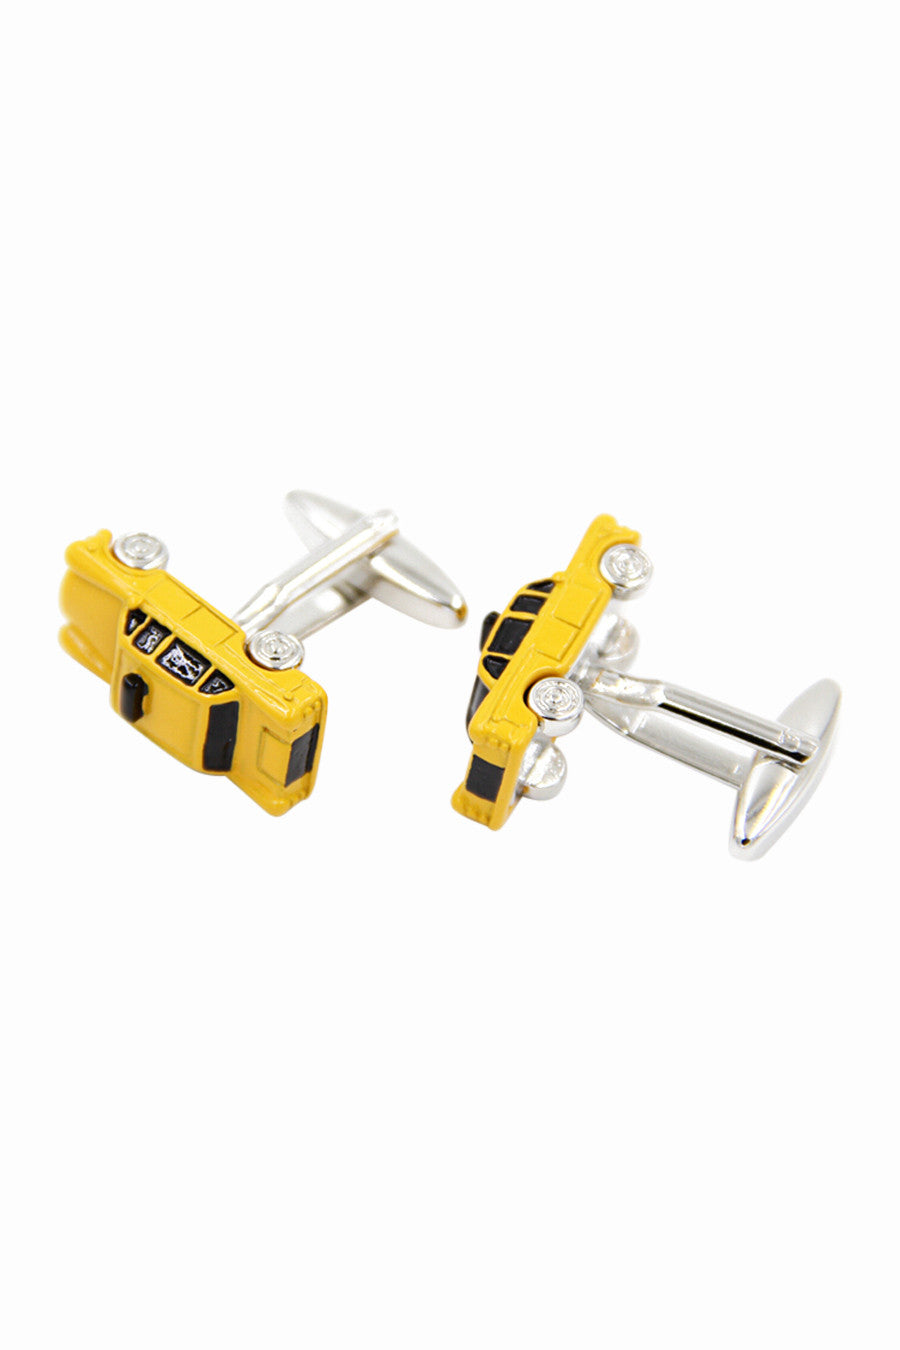 Yellow Car Dress Shirt Cufflinks For Him